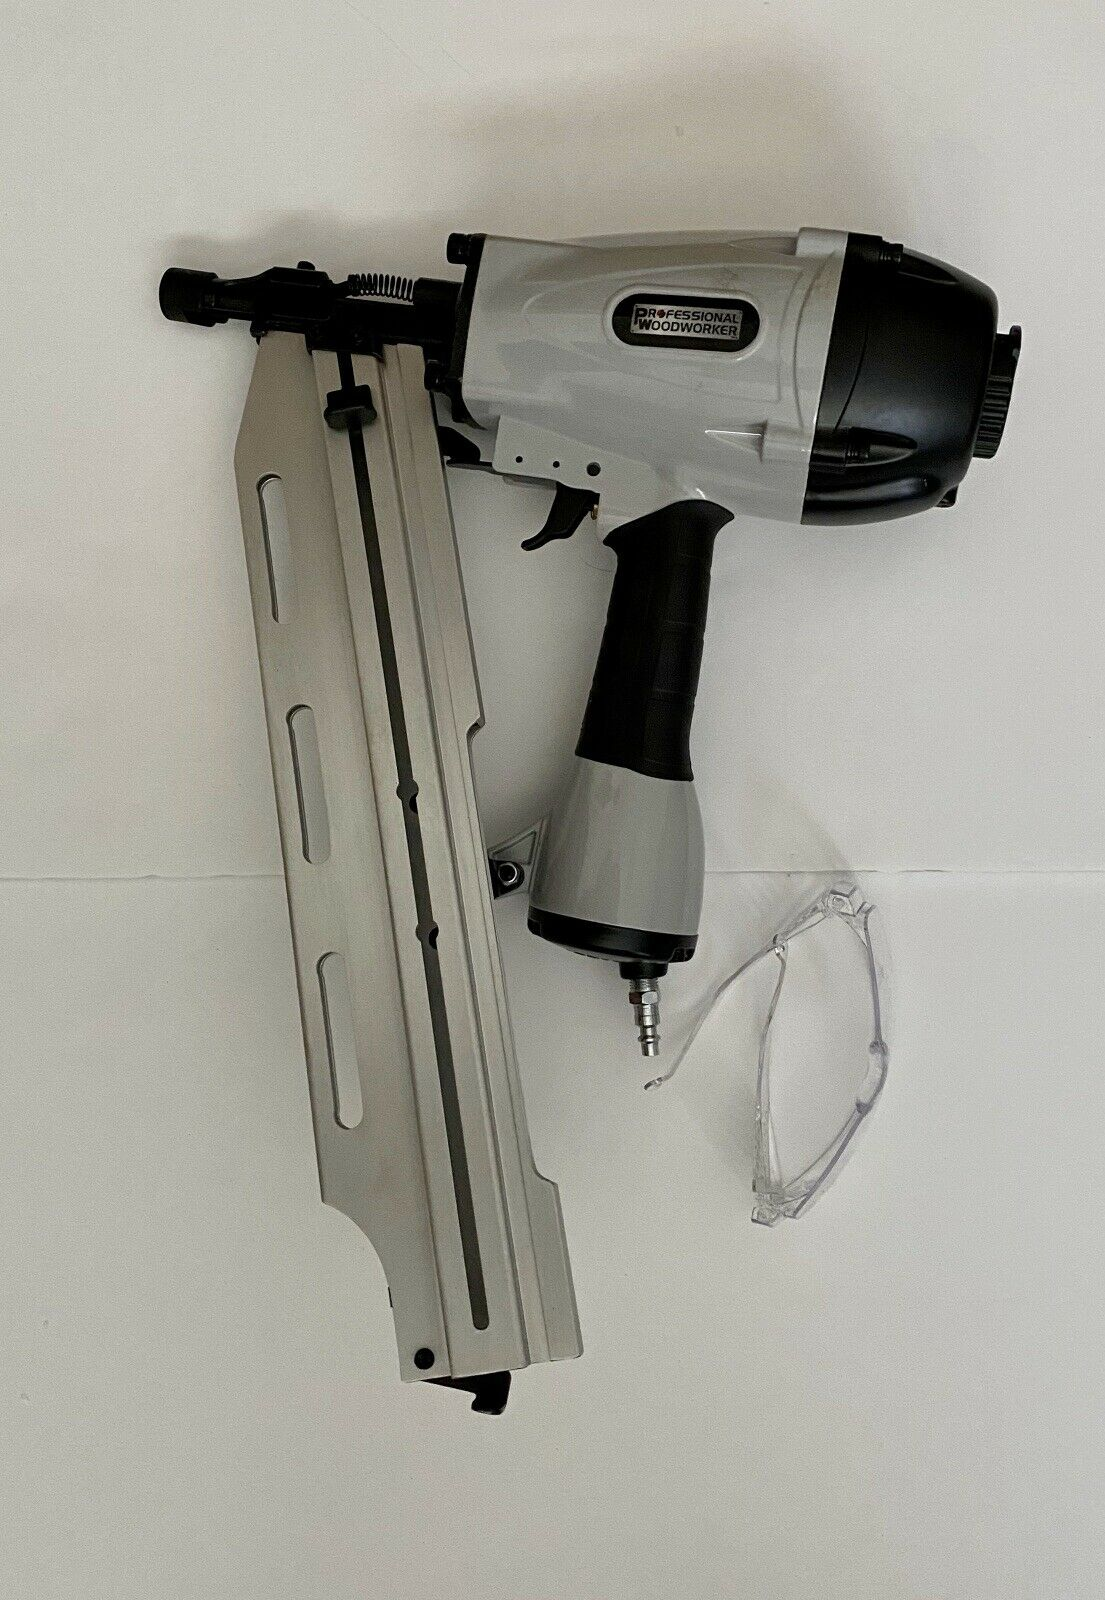 Professional Woodworker 7564 21 Degree Full Round Head Framing Nailer For Sale Online Ebay